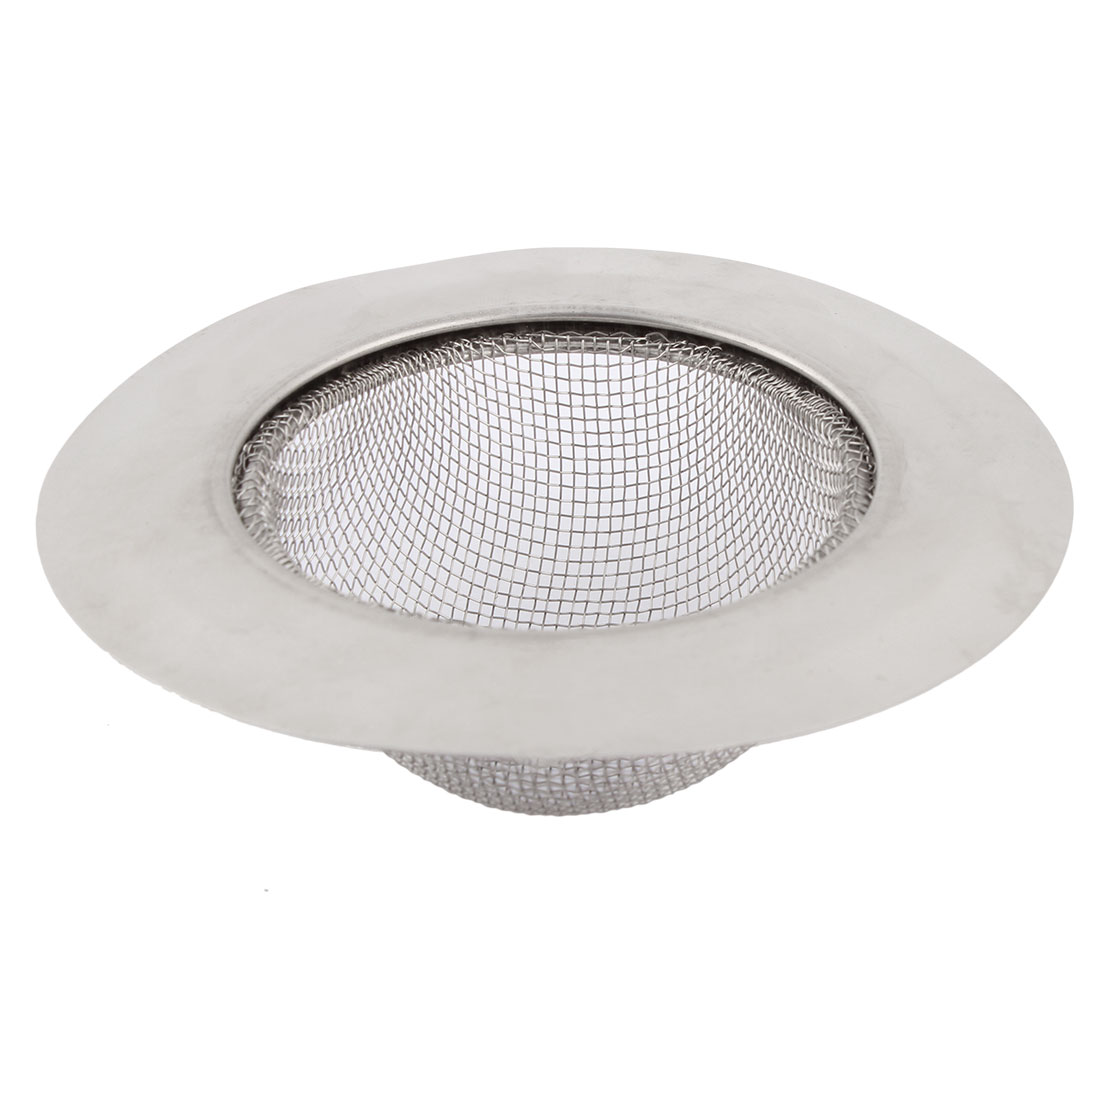 Stainless Steel Home Kitchen Basin Strainer Silver Tone 11.5cm Diameter